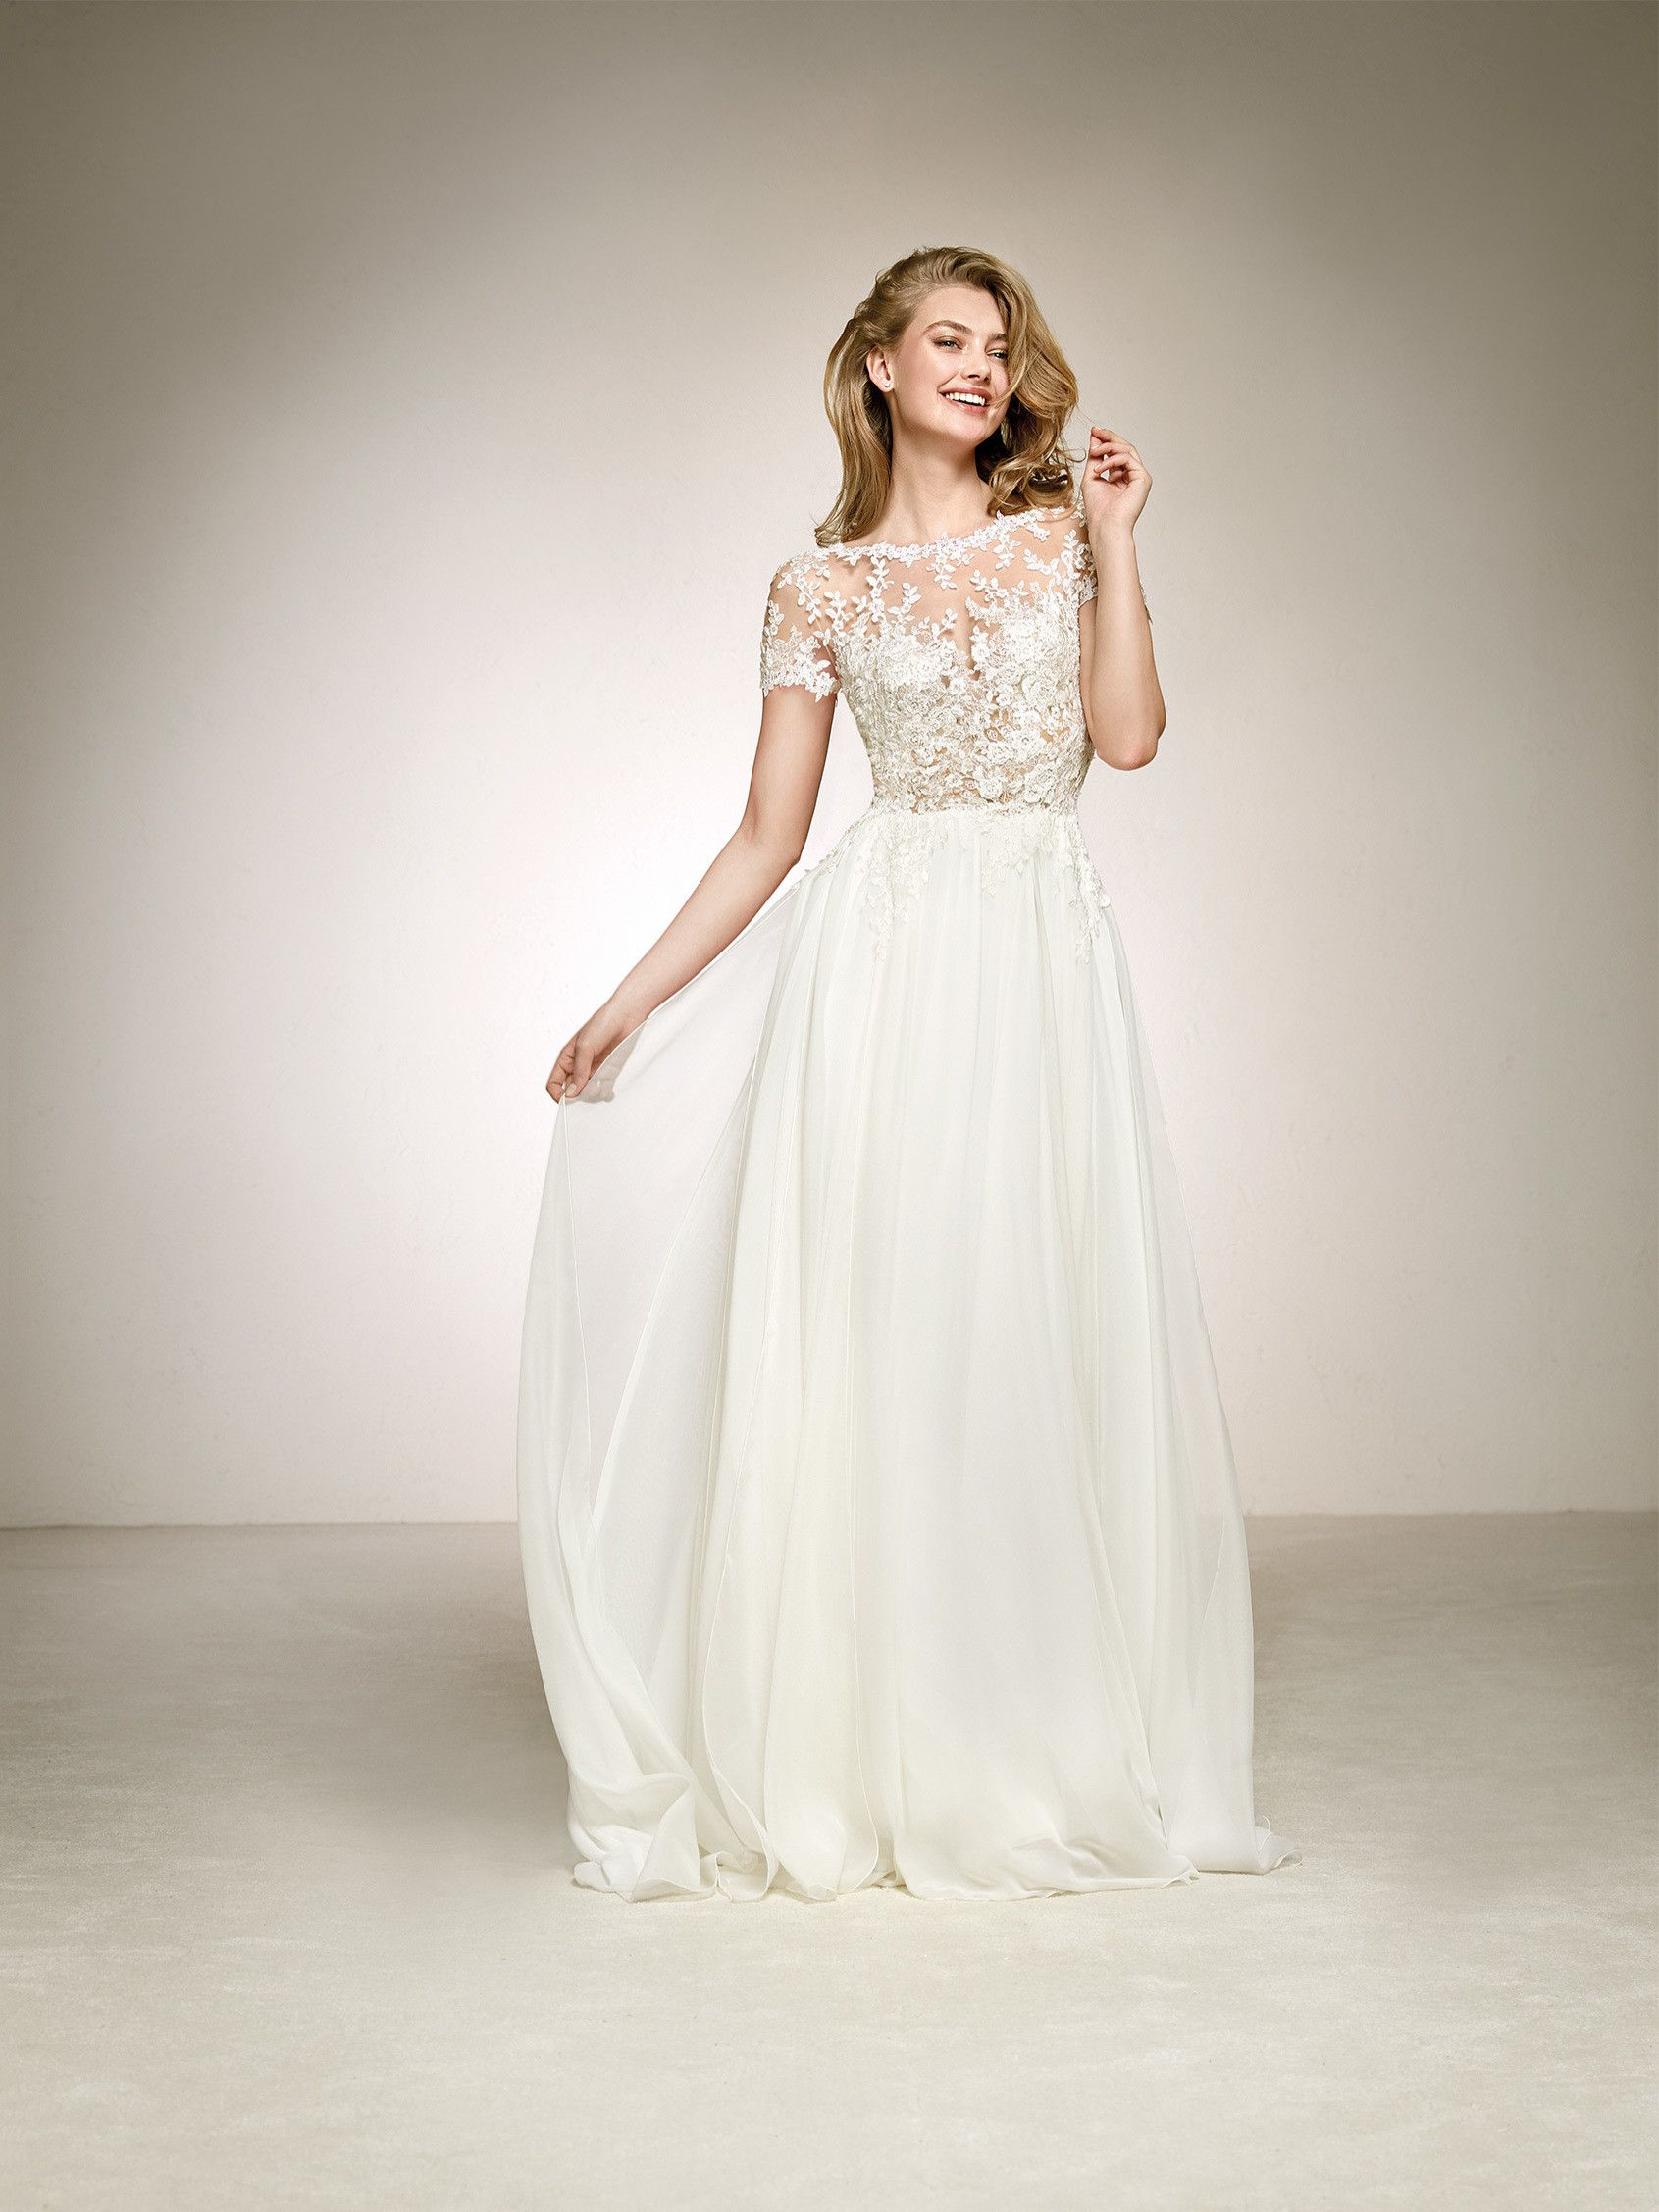 Abito da sposa modello romantico sposa pinterest wedding dress